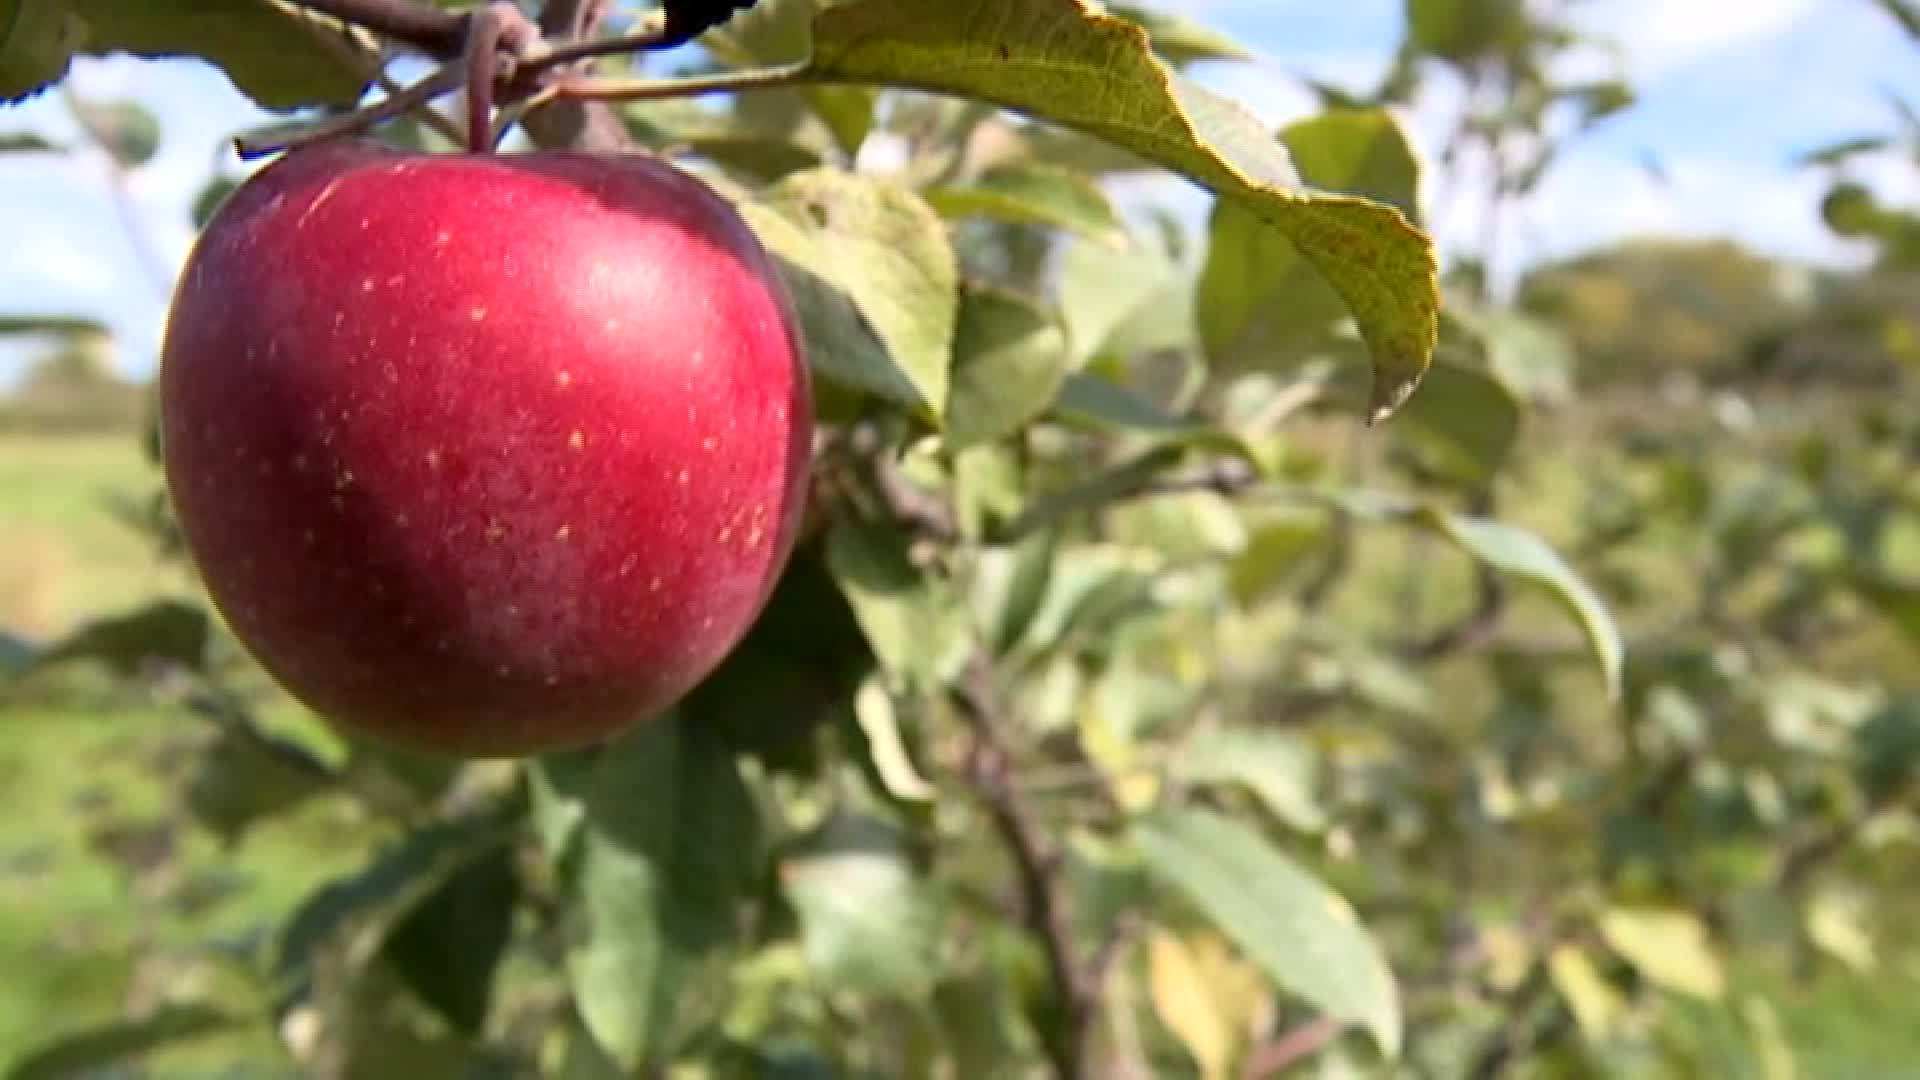 Thieves pick 7,000 pounds of apples off the trees in a Michigan orchard